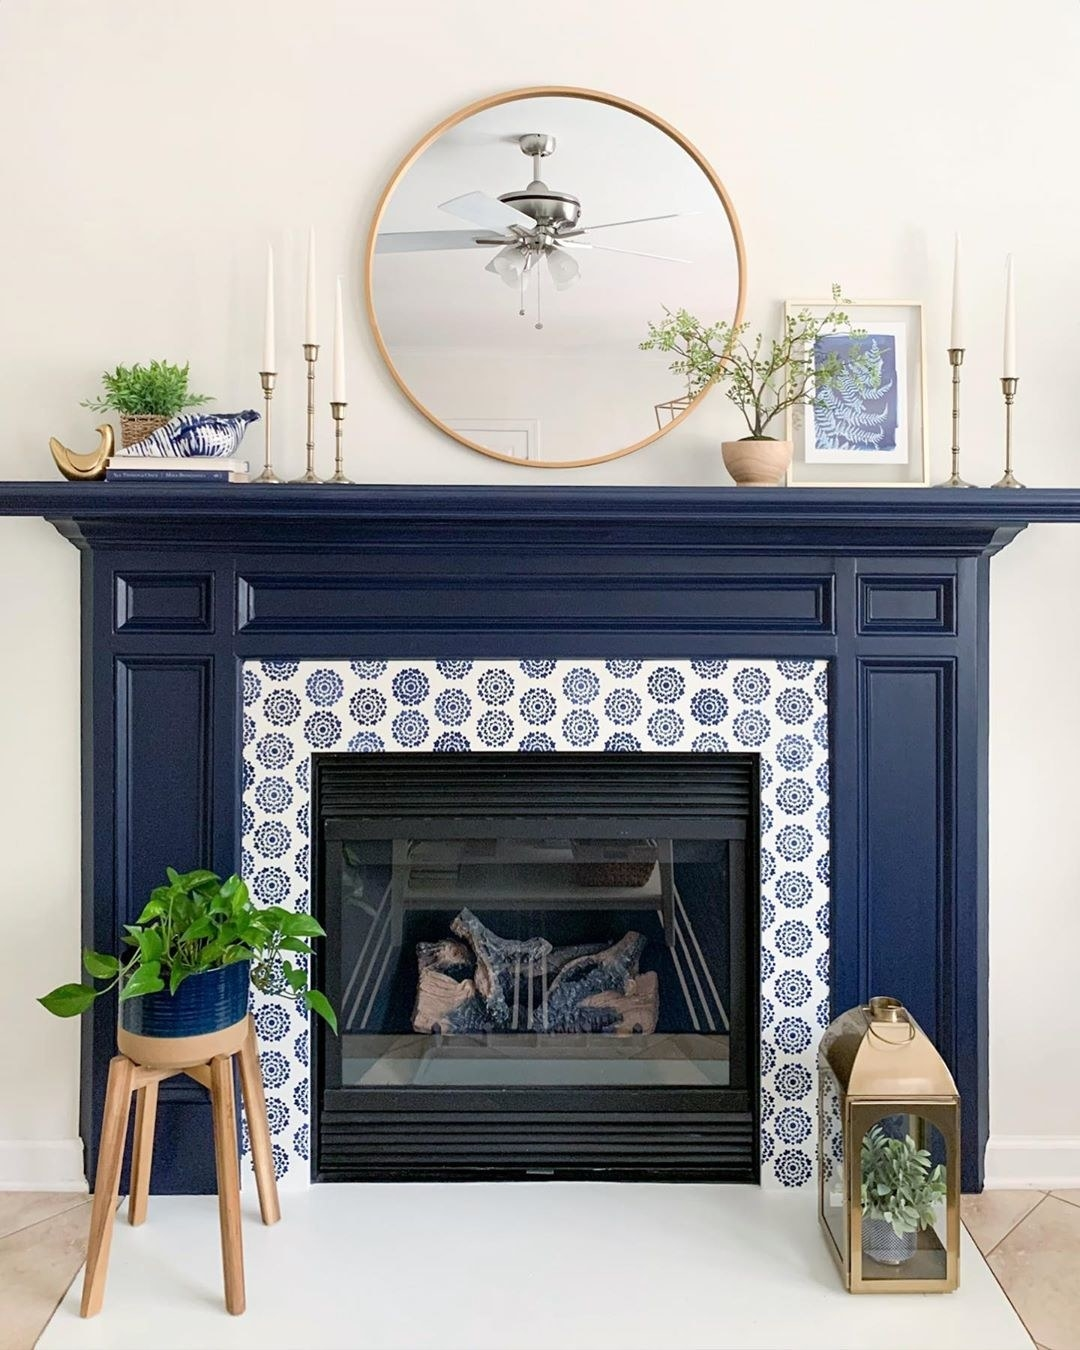 A fireplace's mantle is painted navy blue to contrast the off-white walls